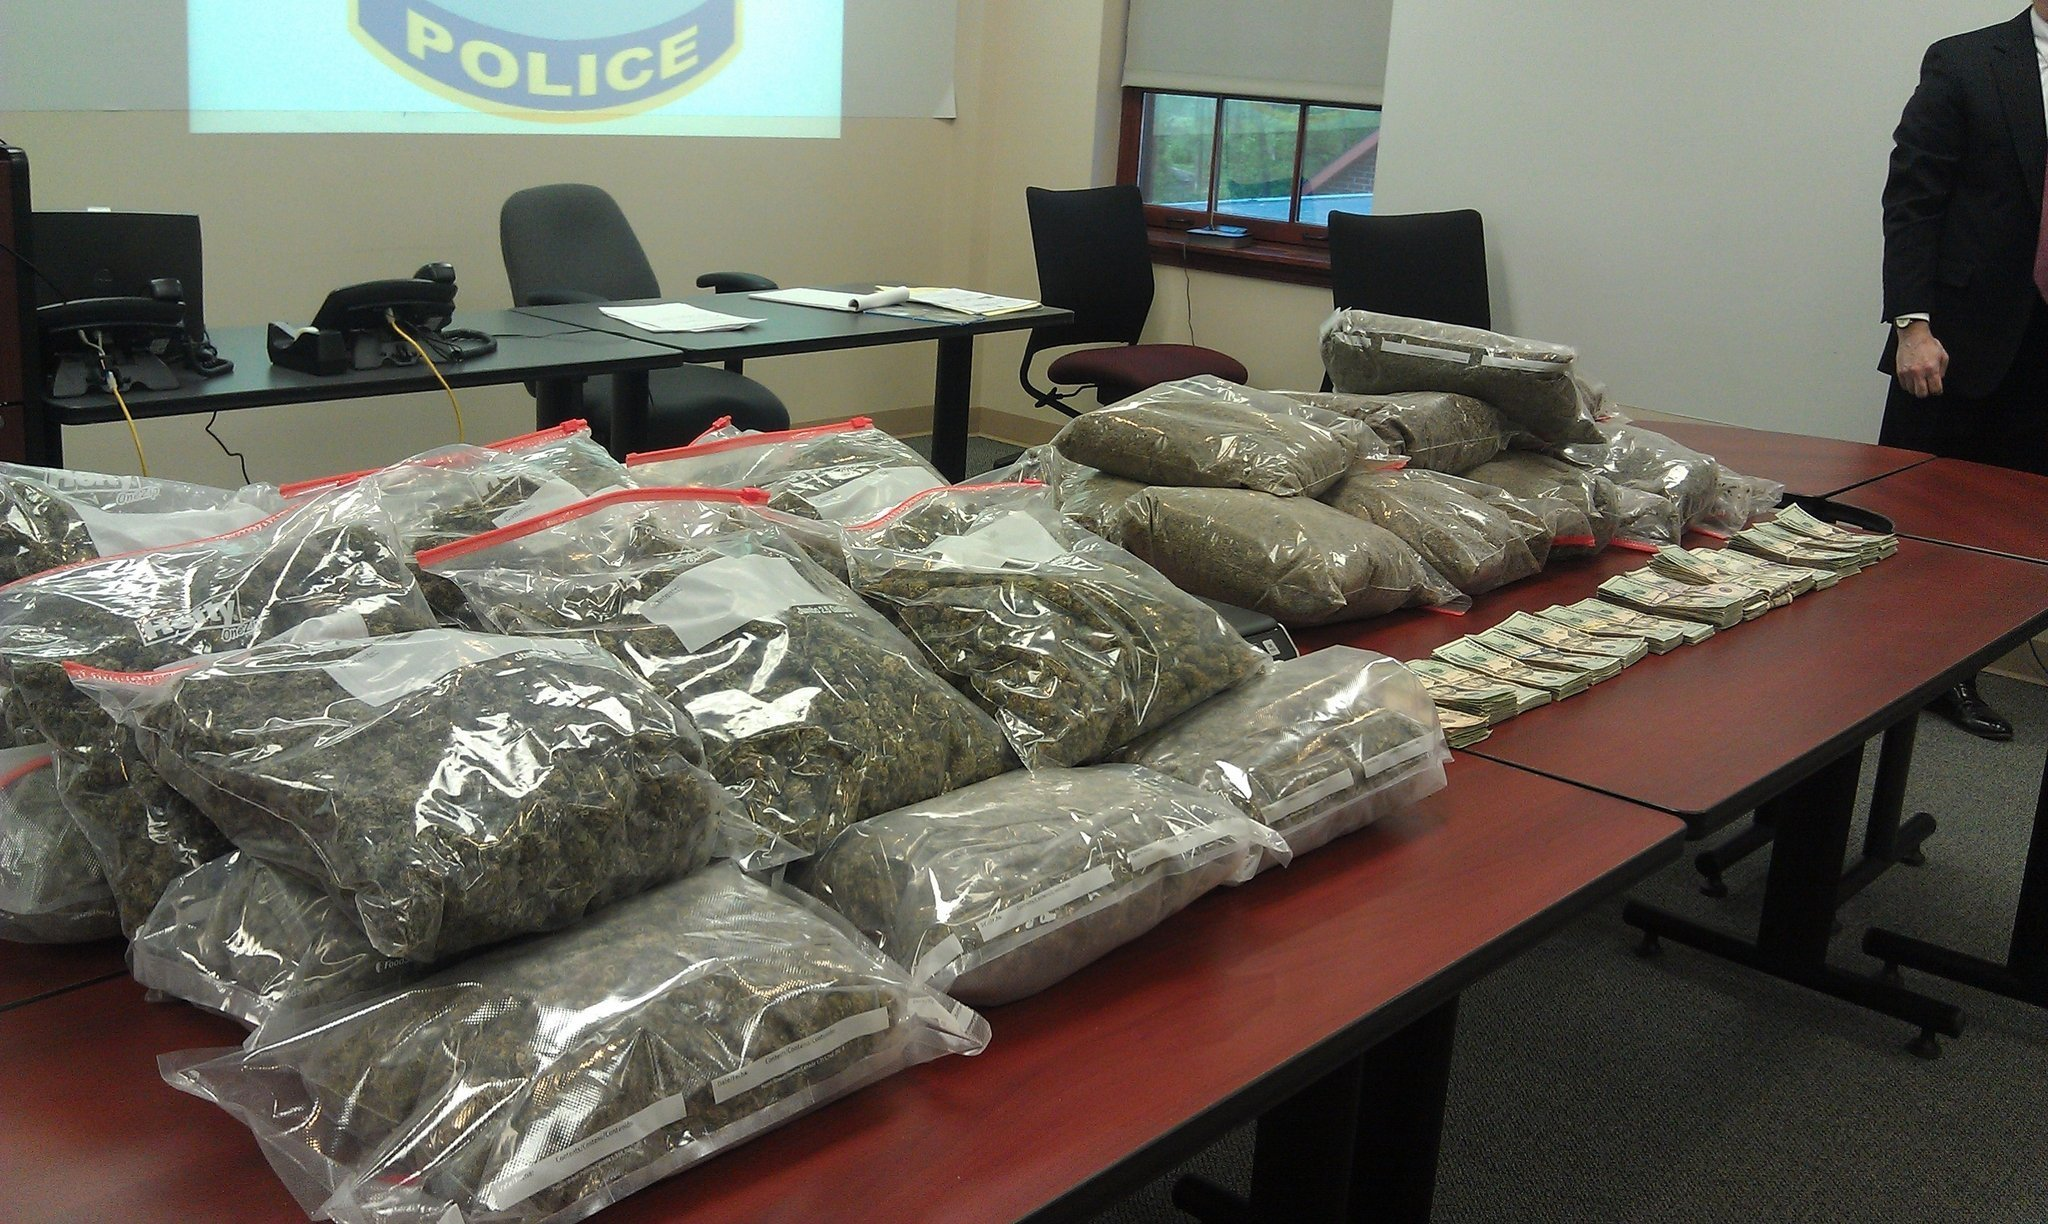 https://i0.wp.com/media.pennlive.com/midstate_impact/photo/cumberland-county-pot-bust-45bb1c03e7c542bc.jpg